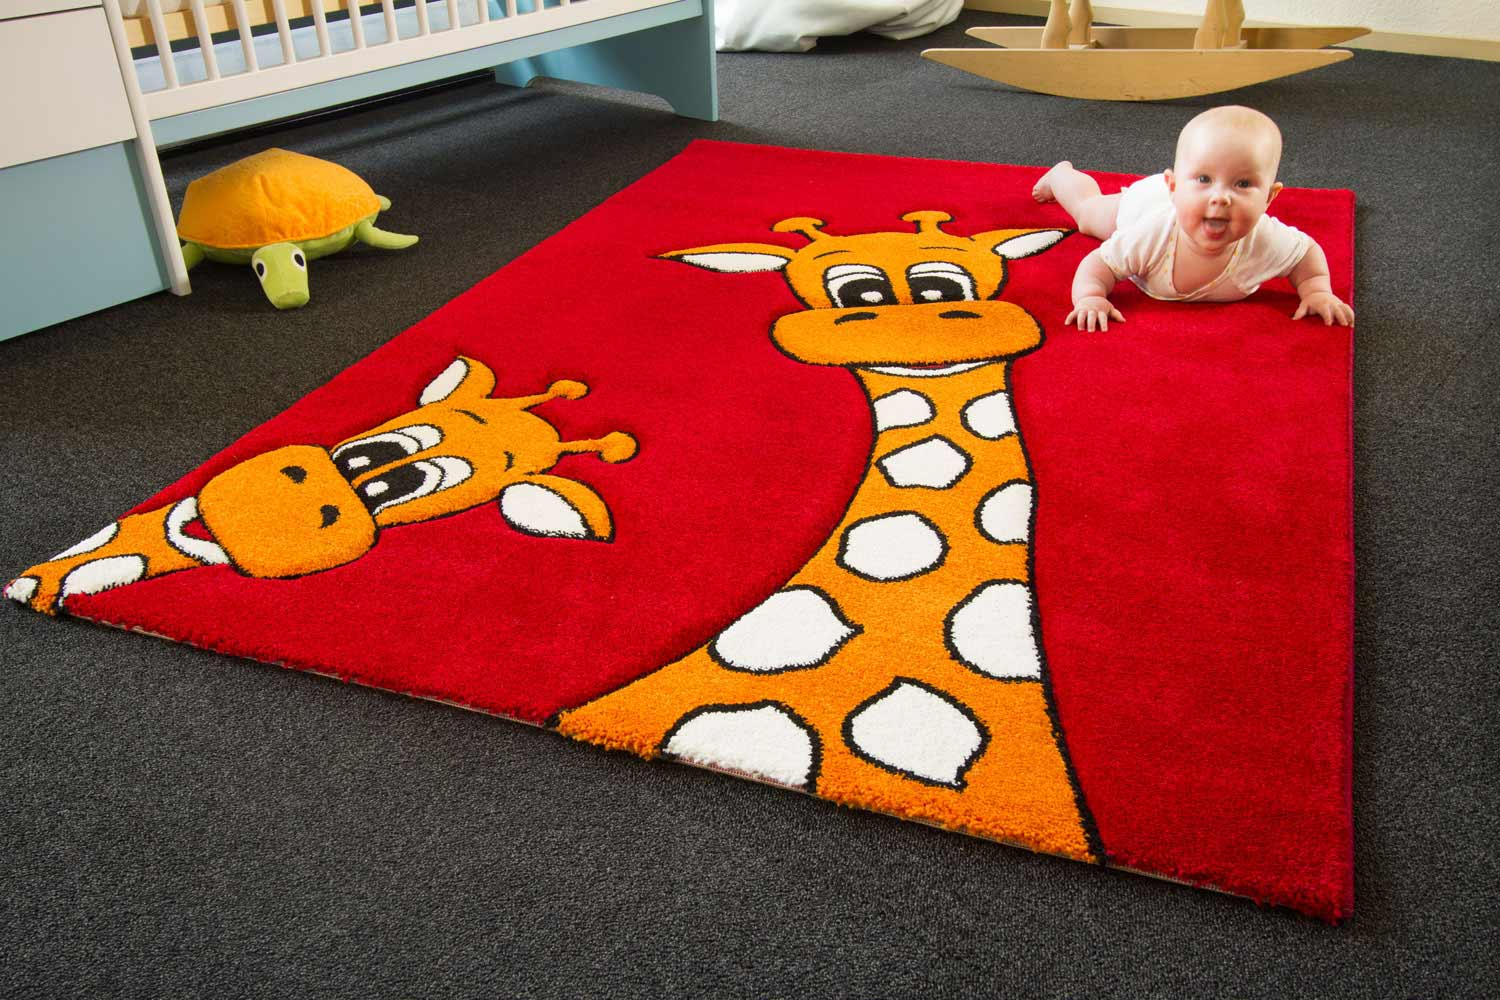 Langflor Teppich 100x160 Kinderteppich Little Carpet Giraffe Lia Global Carpet